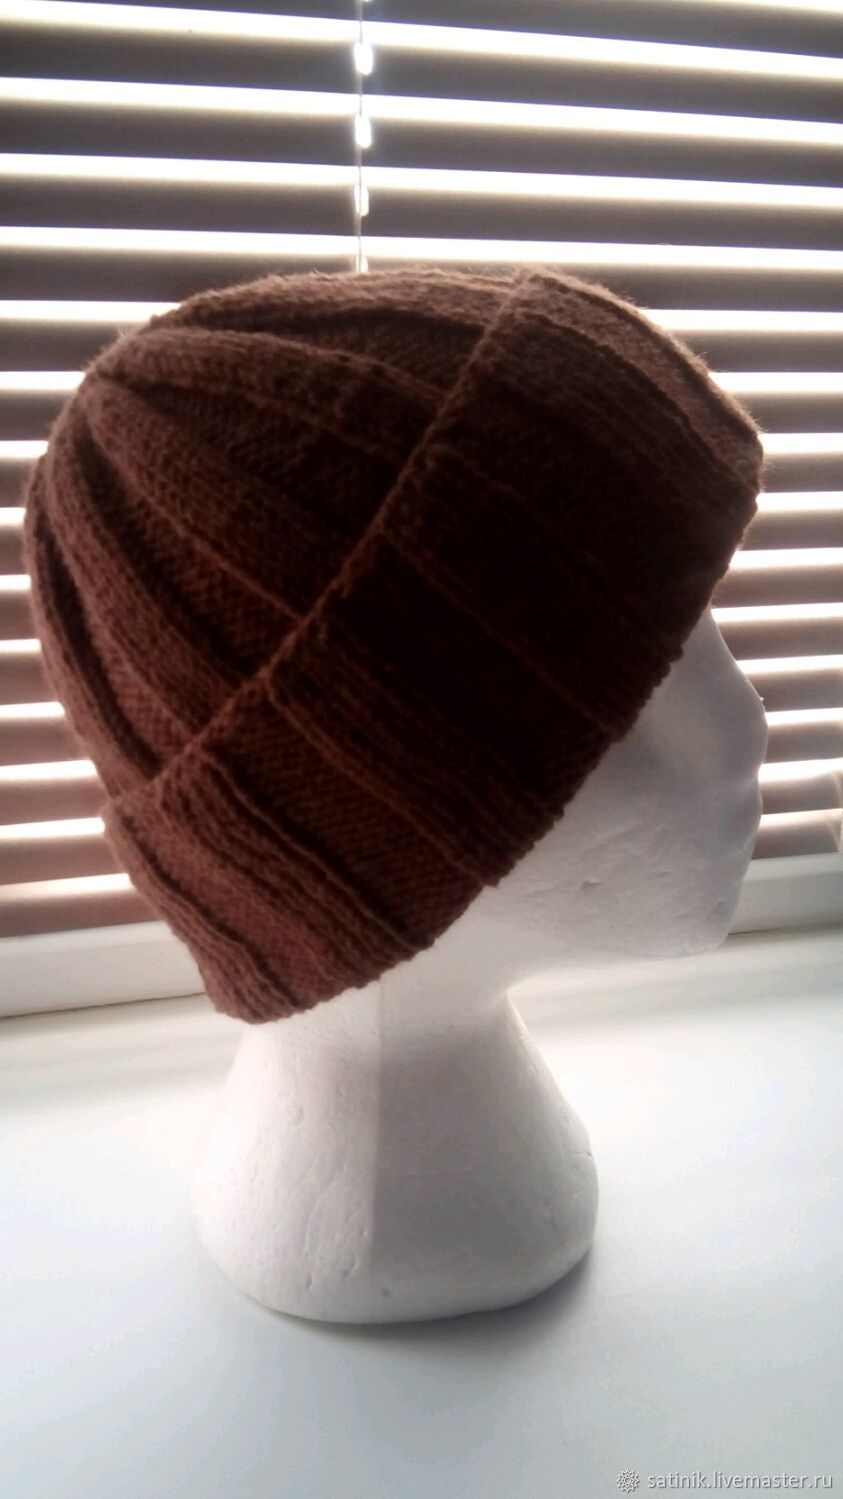 Hat knitted unisex, brown, Caps, Kamyshin,  Фото №1